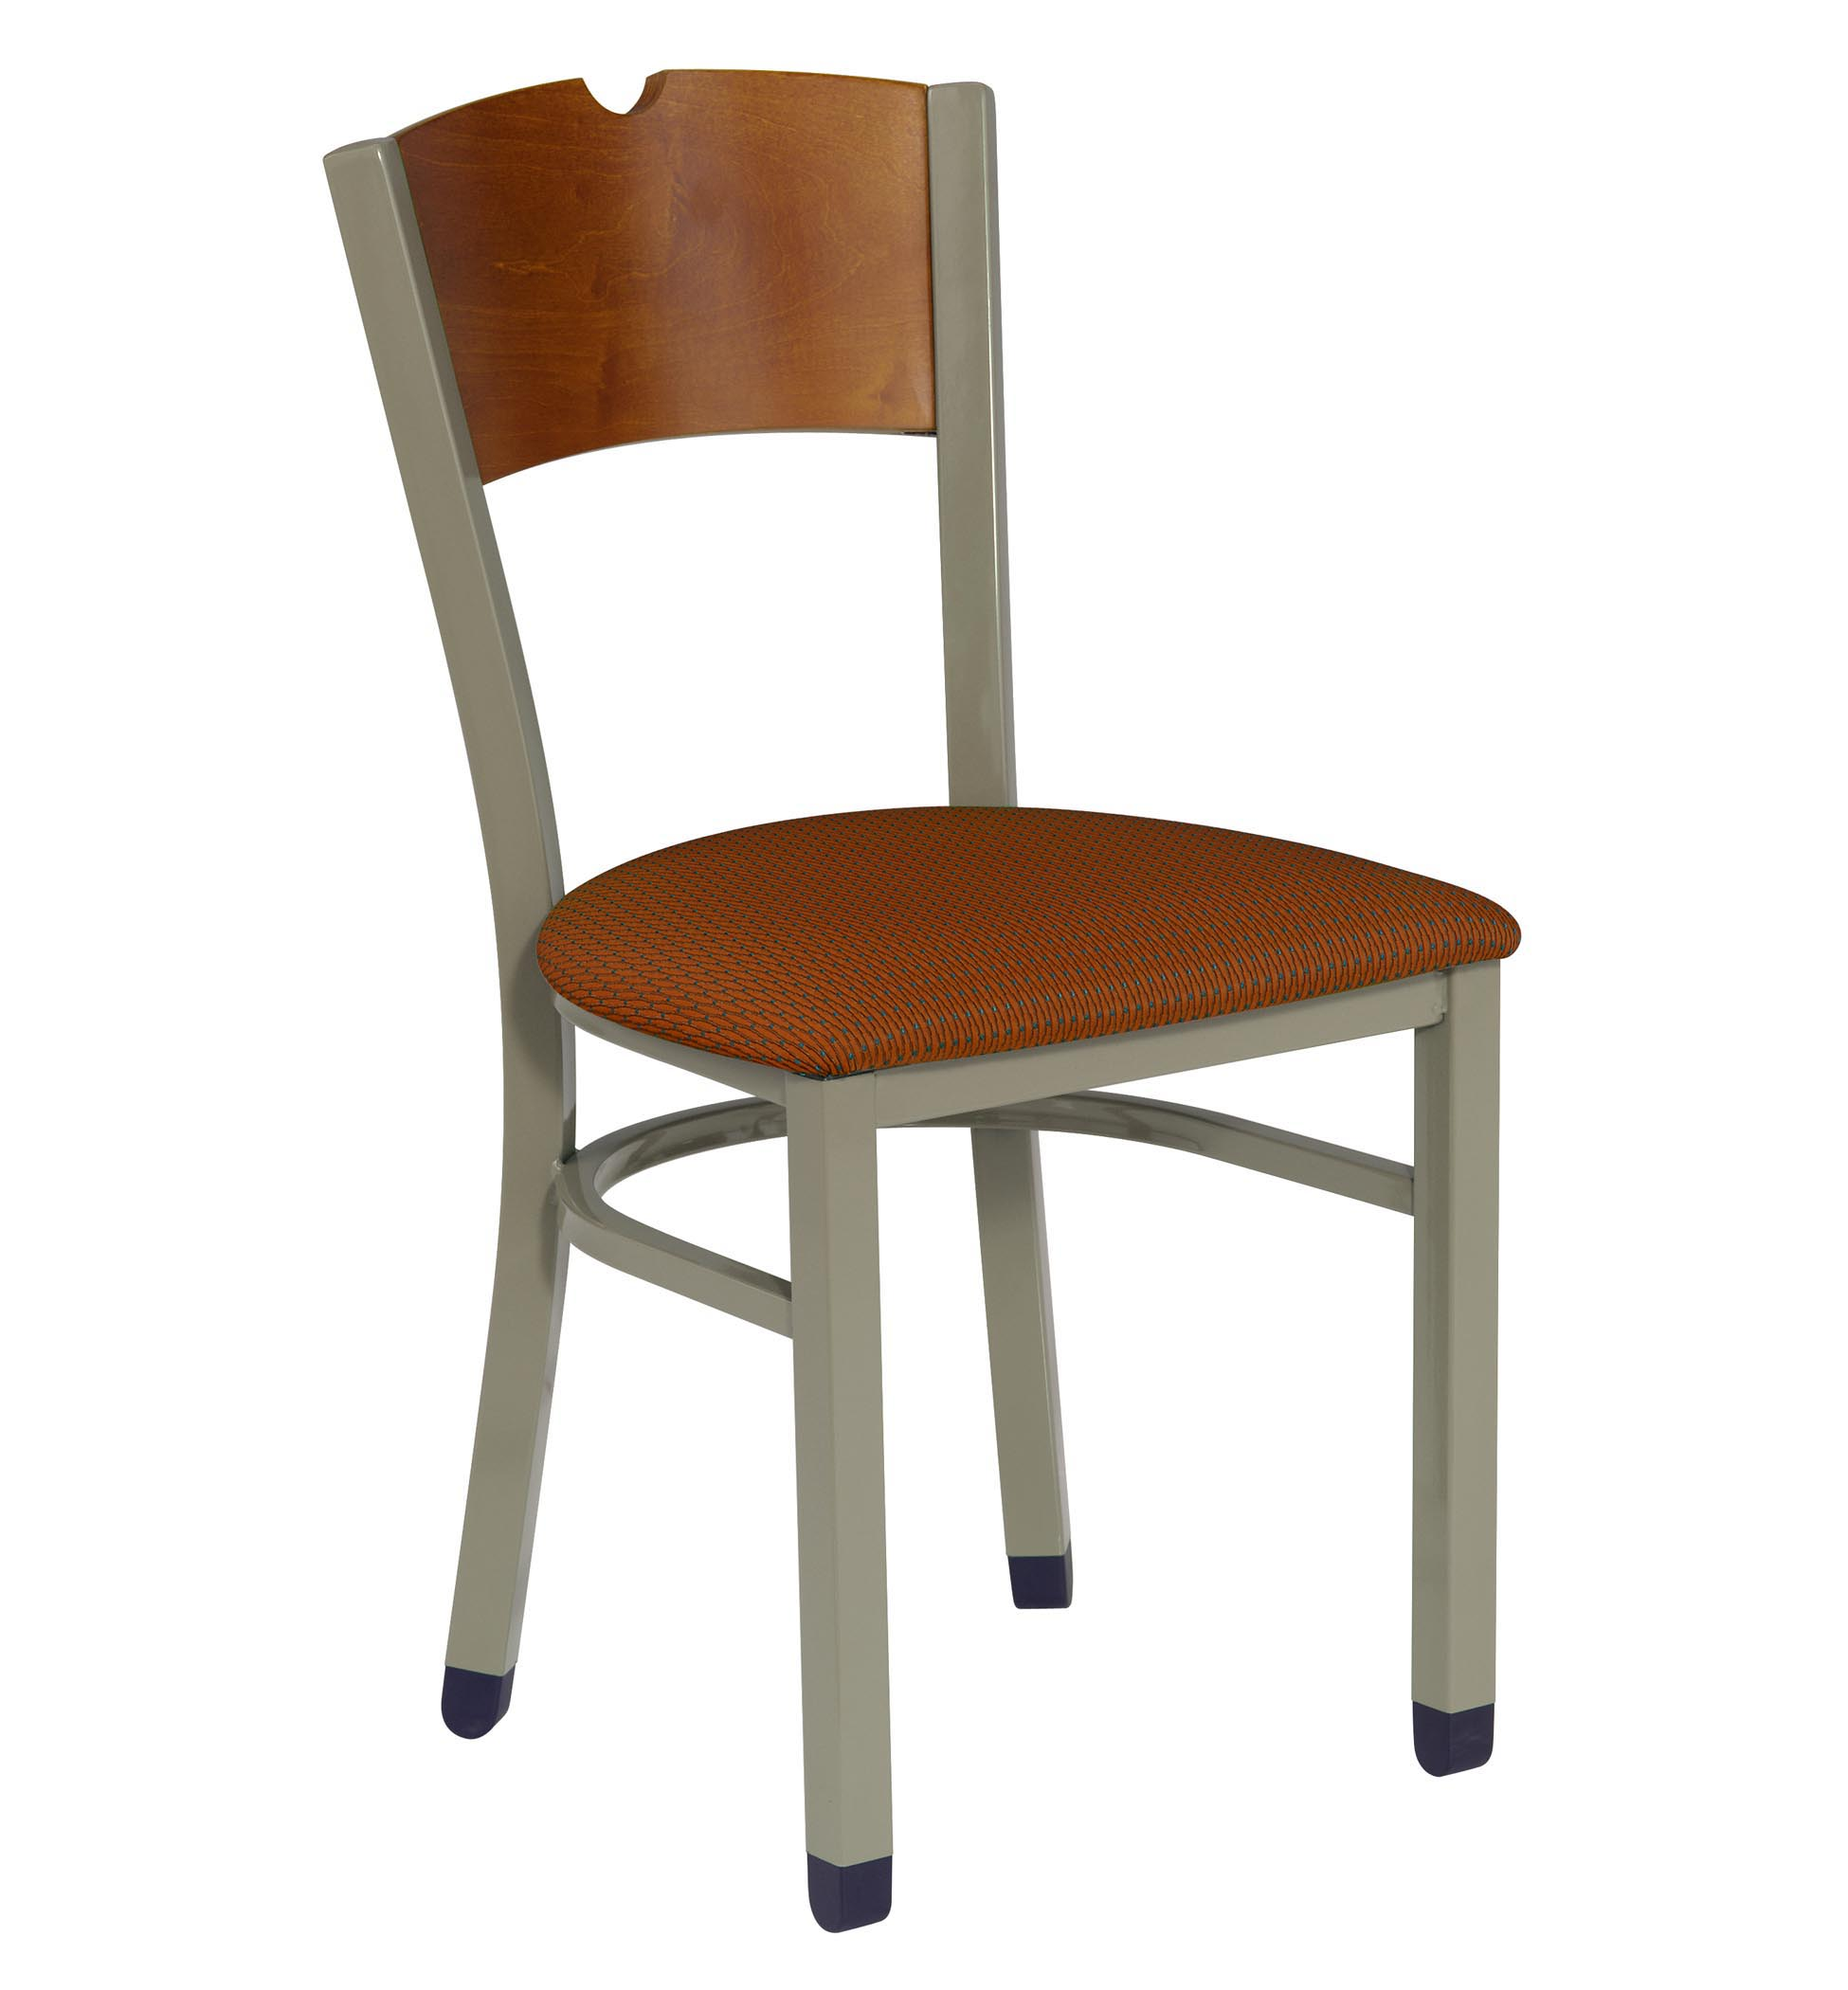 SR814 Metal Chair. SHARE. LOW RES HI RES FAVORITES PRINT